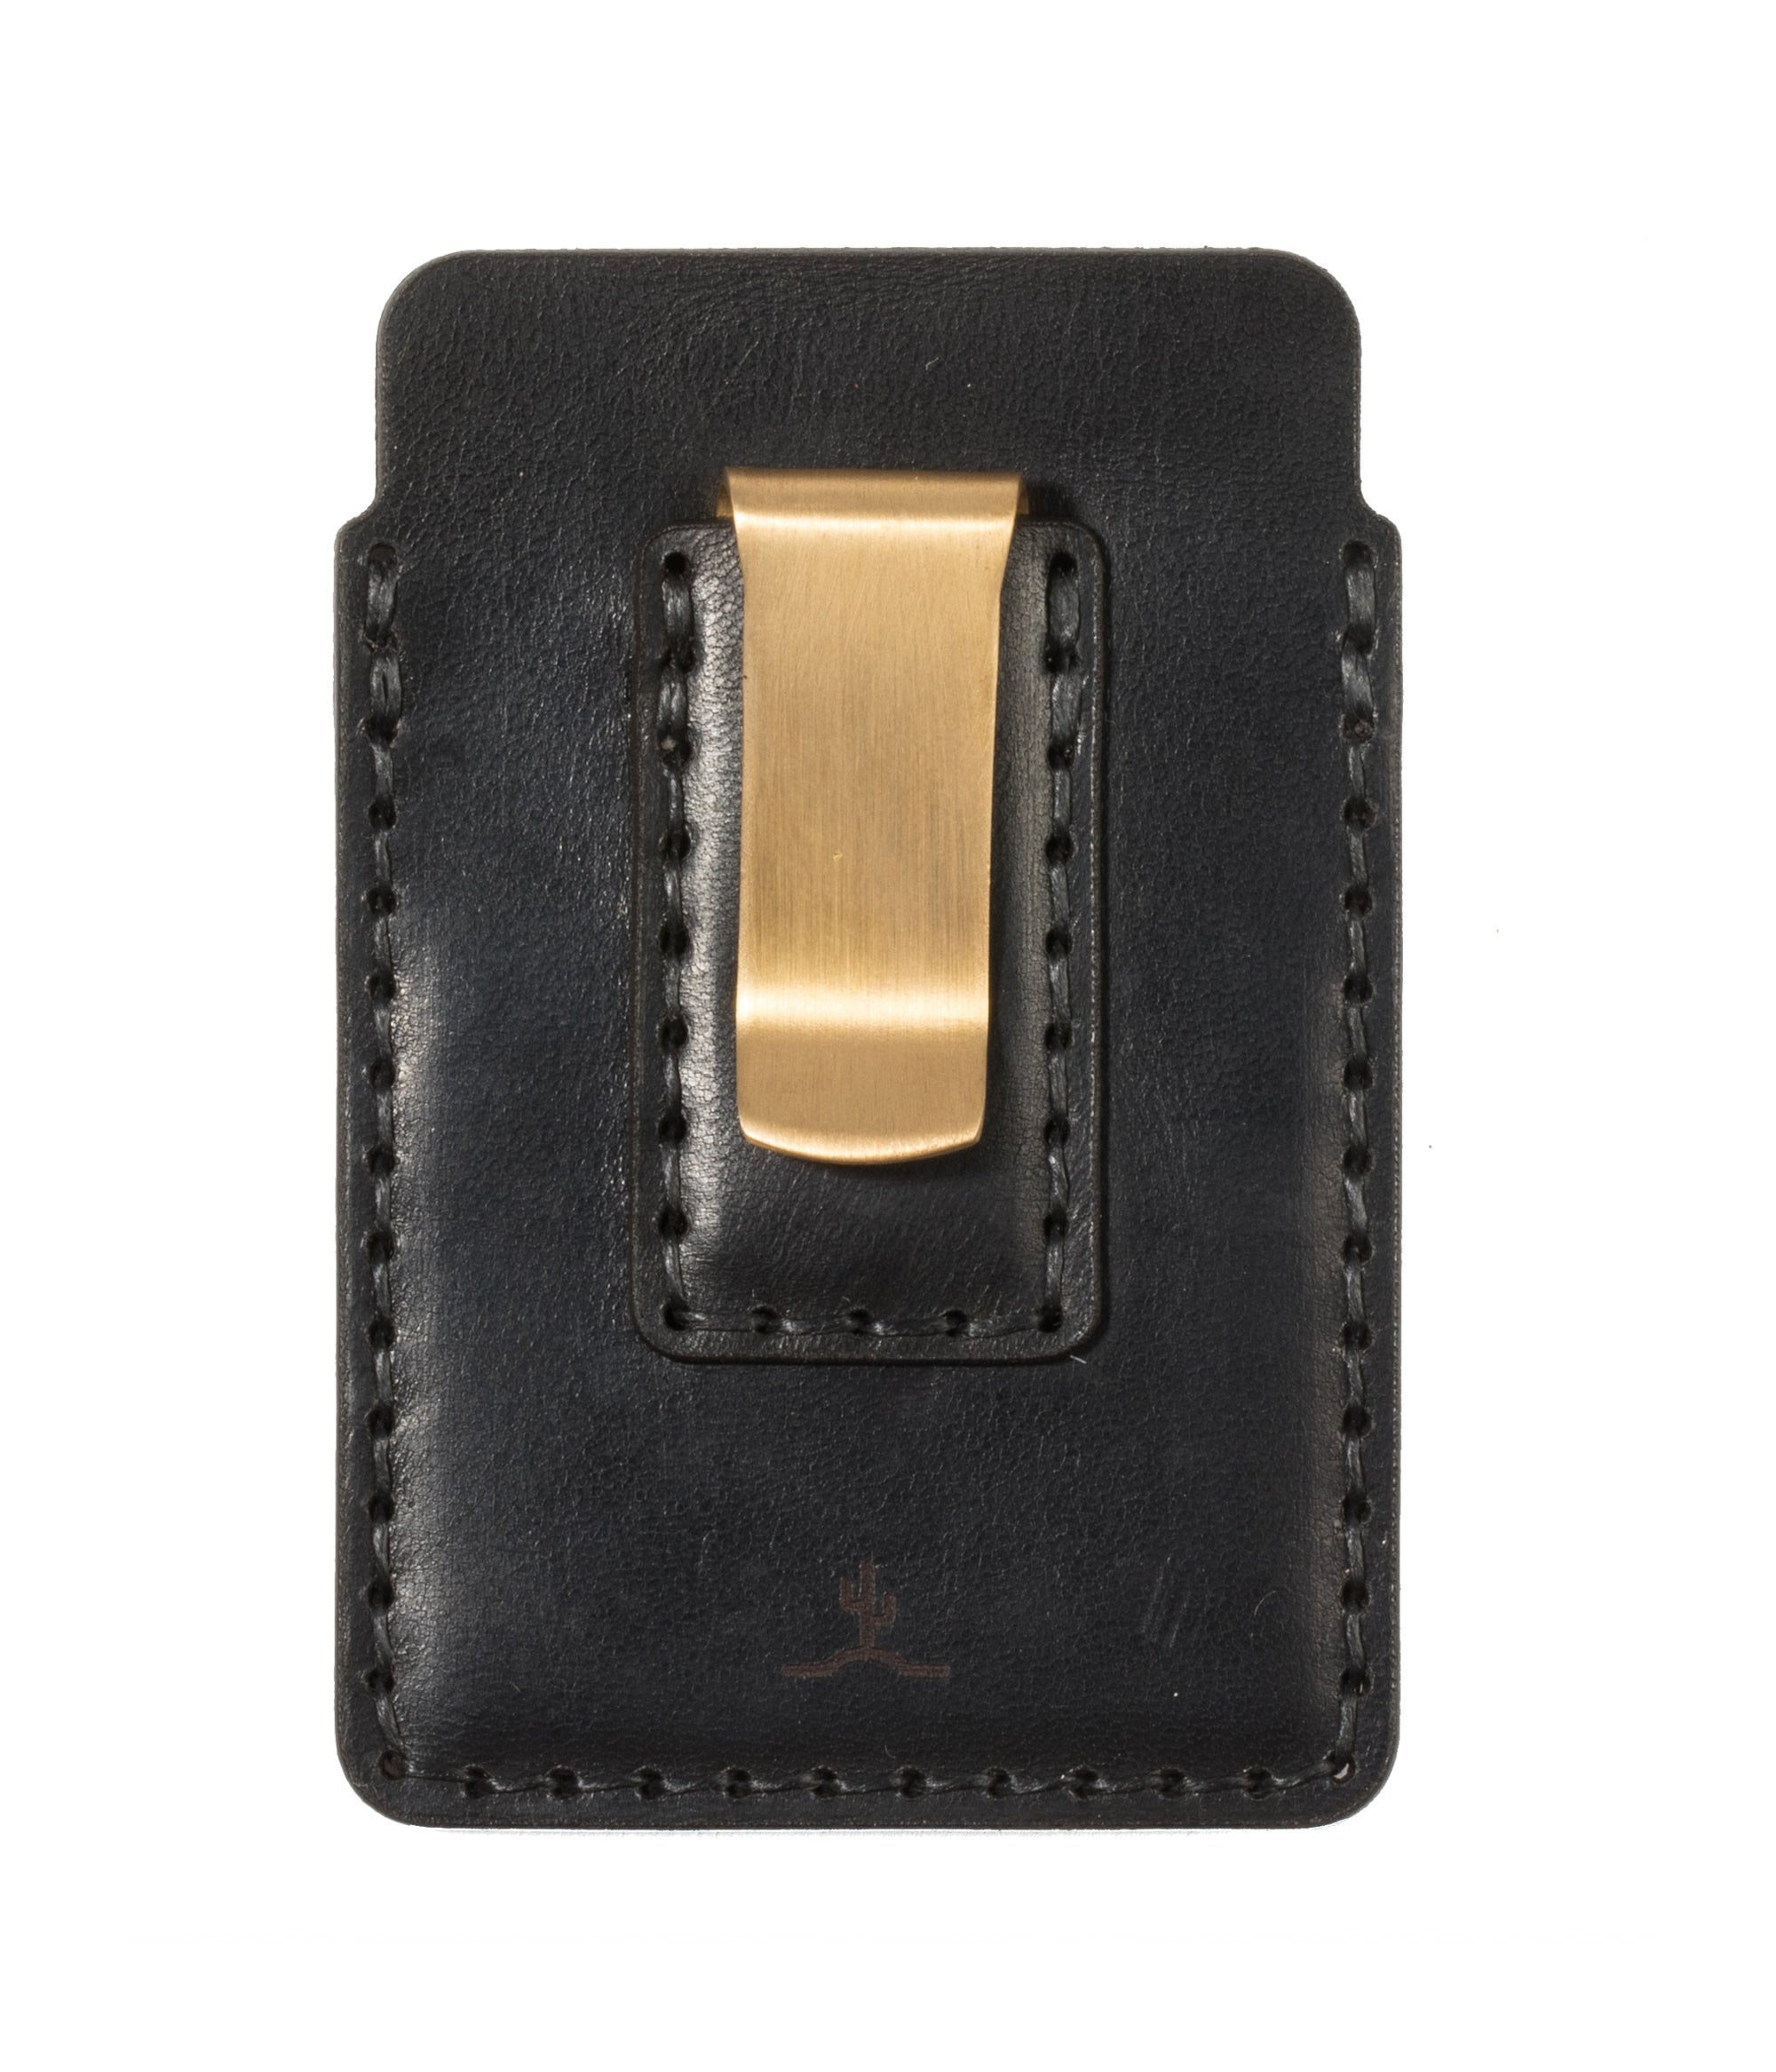 Simple Card Wallet with Money Clip // Black - Bexar Goods